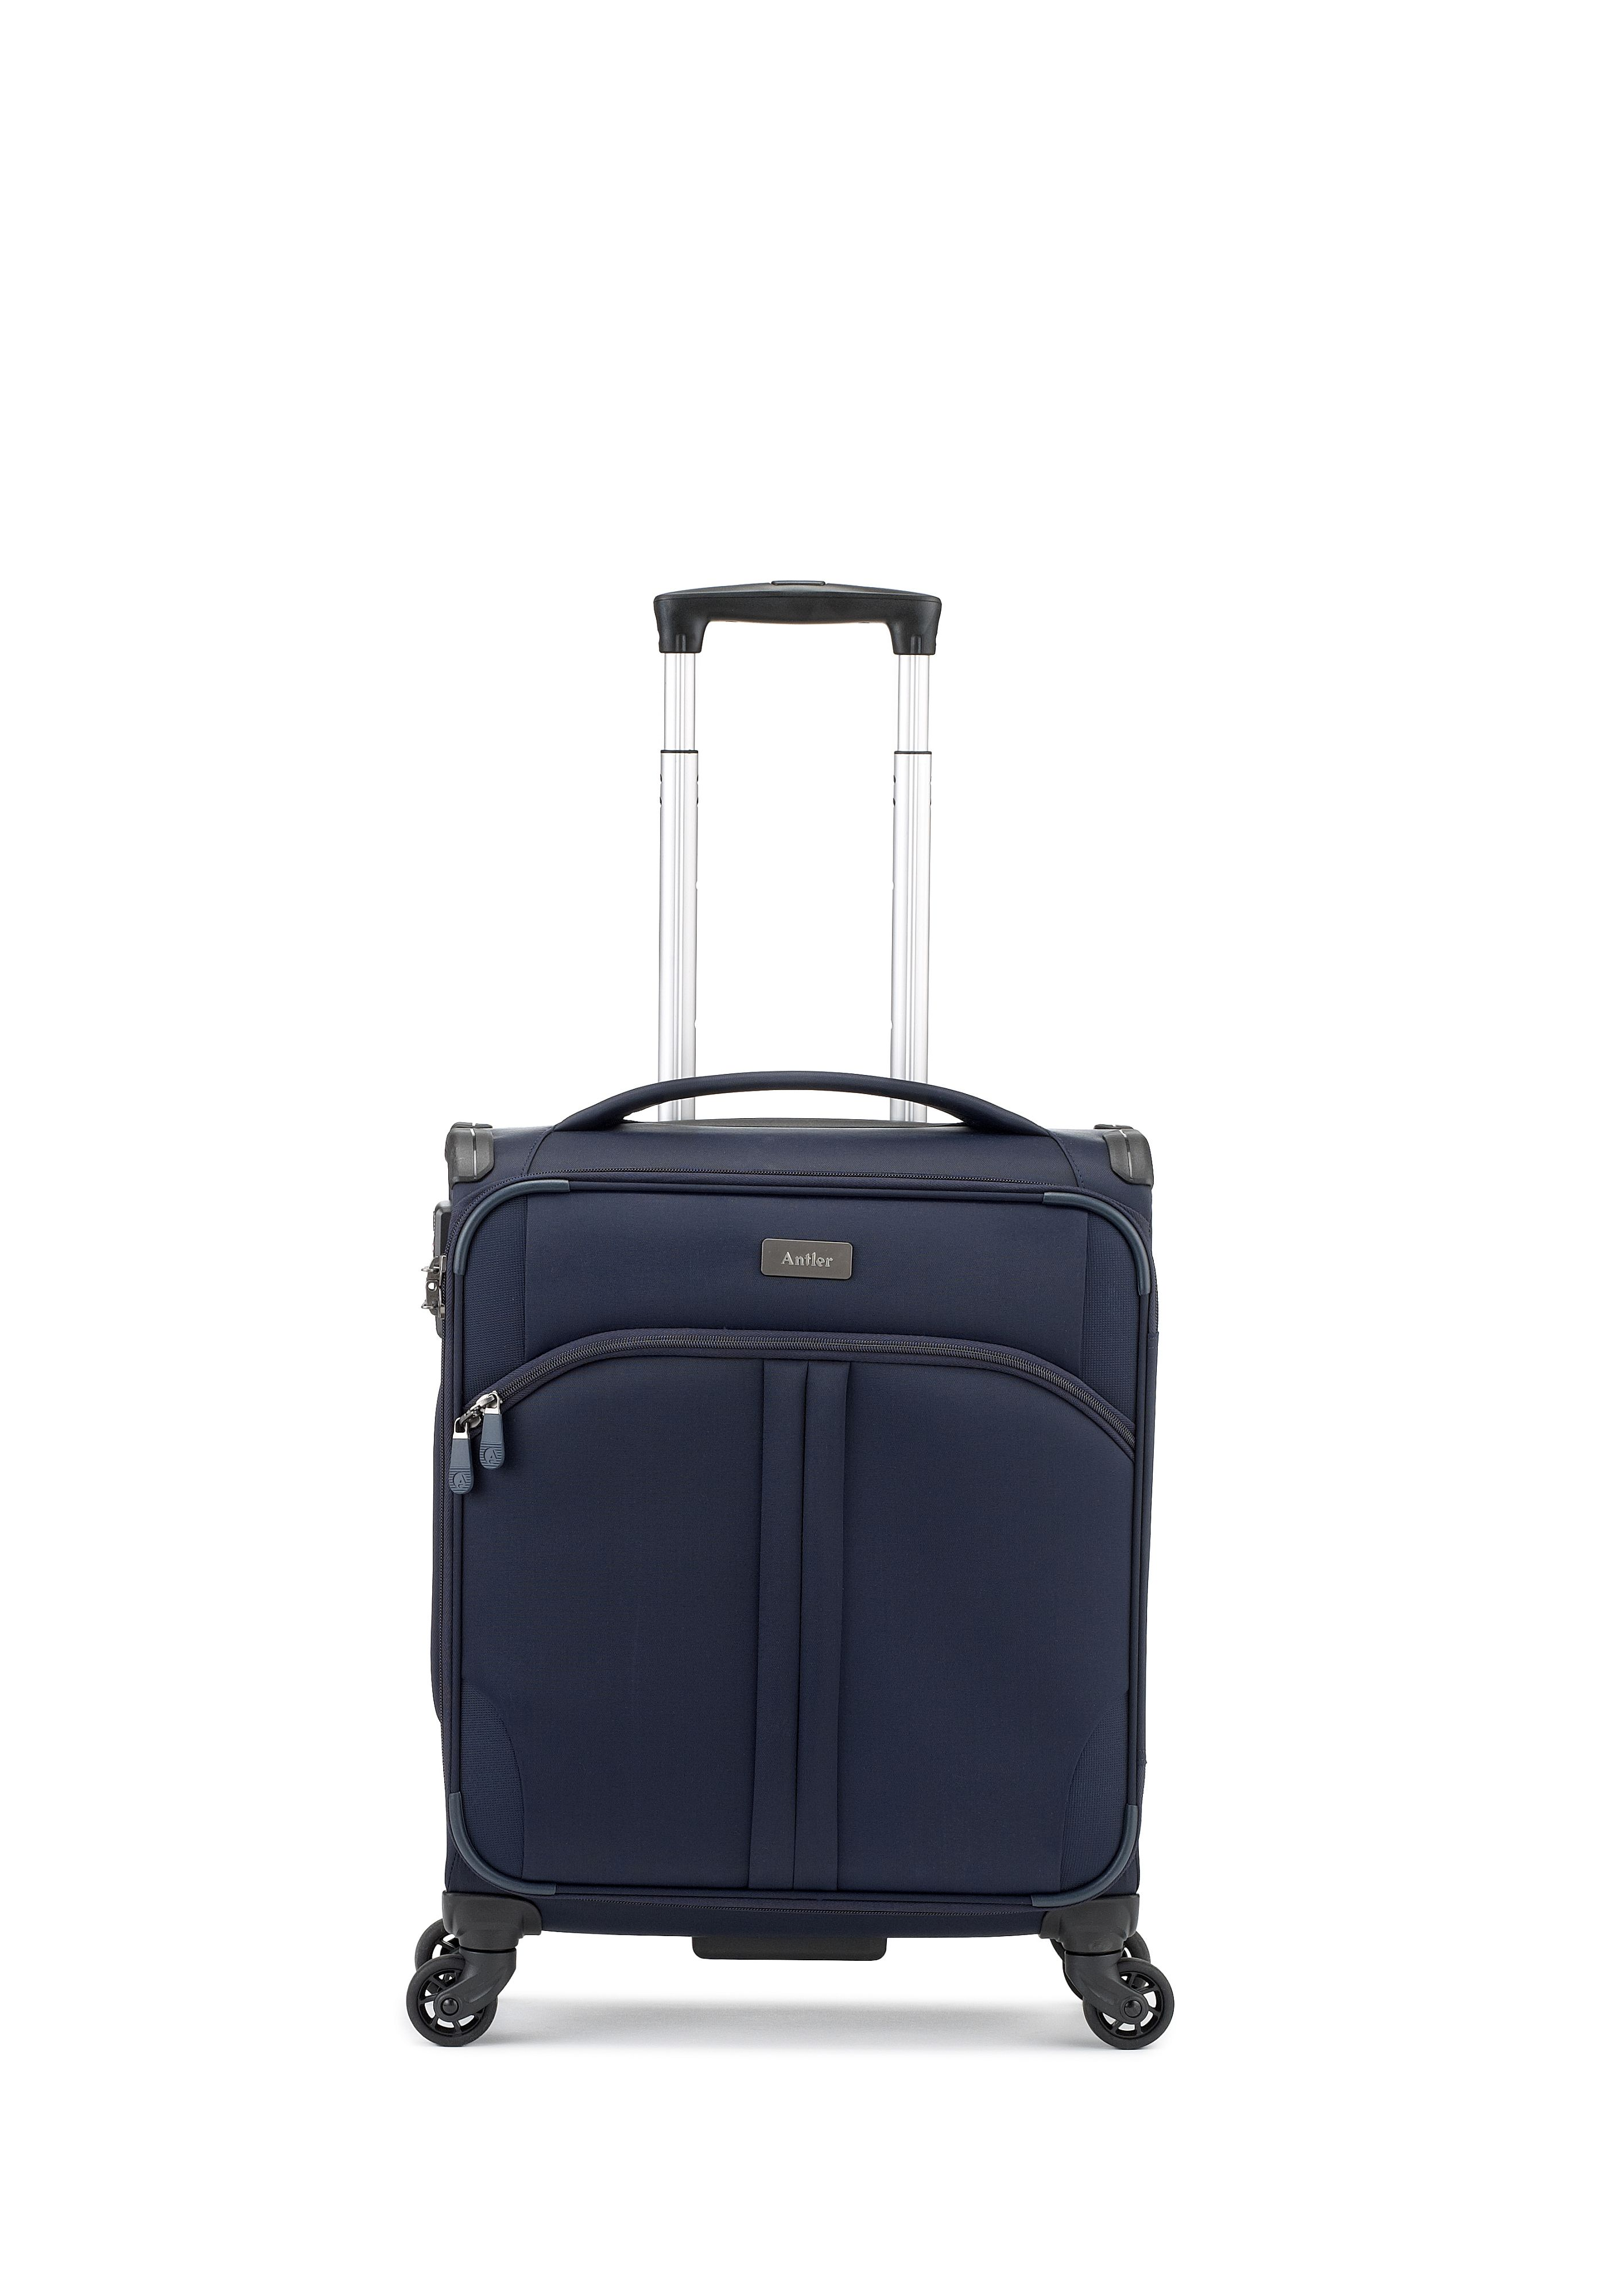 Antler Aire navy 4 wheel soft cabin suitcase Navy